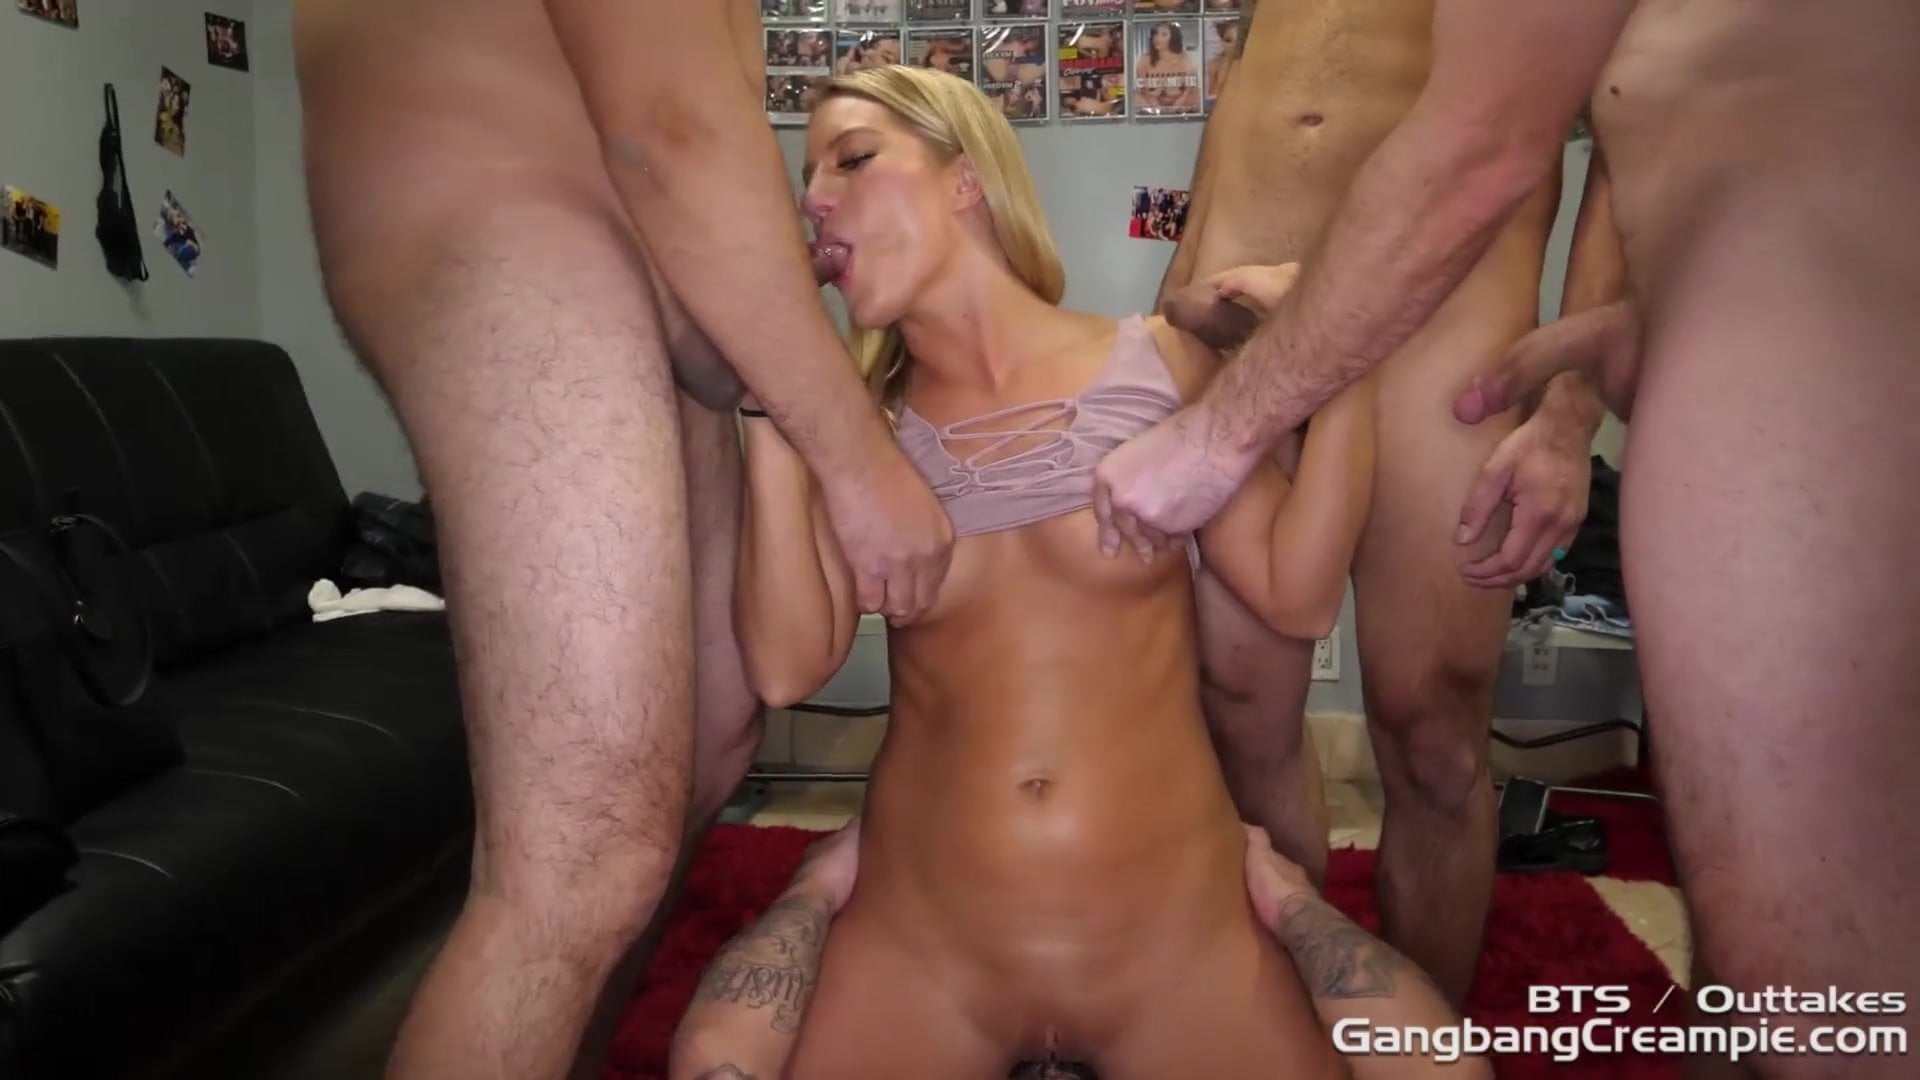 BIG BOOTY BLONDE HOTTIE GETS RAVAGED BY 5 STRANGERS